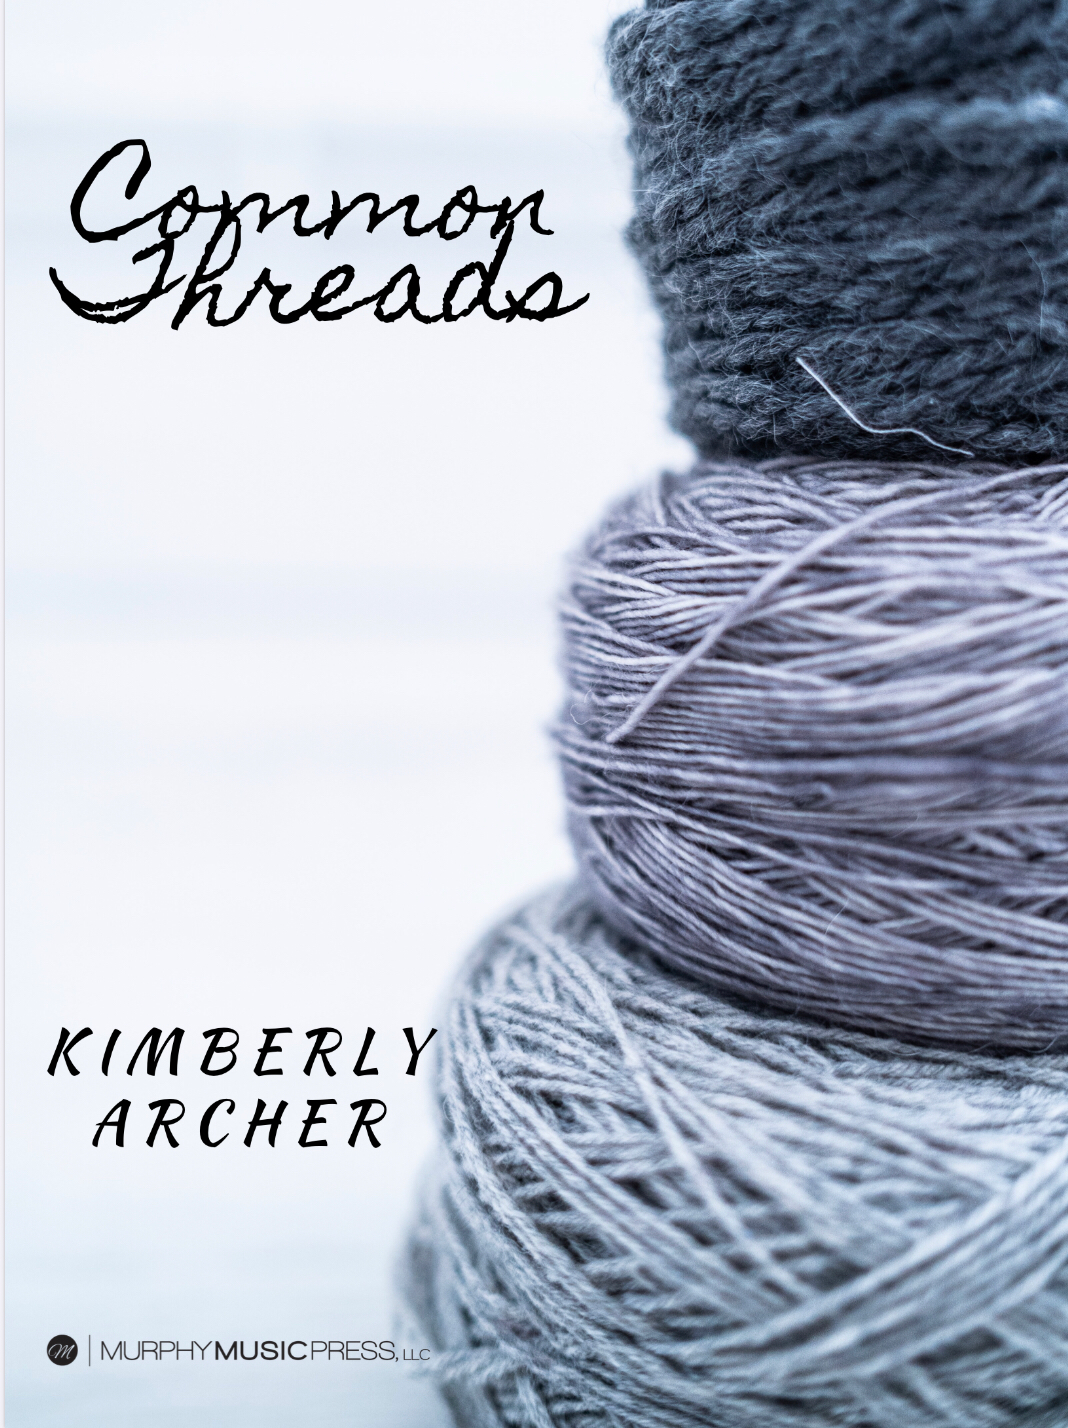 Common Threads by Kimberly Archer